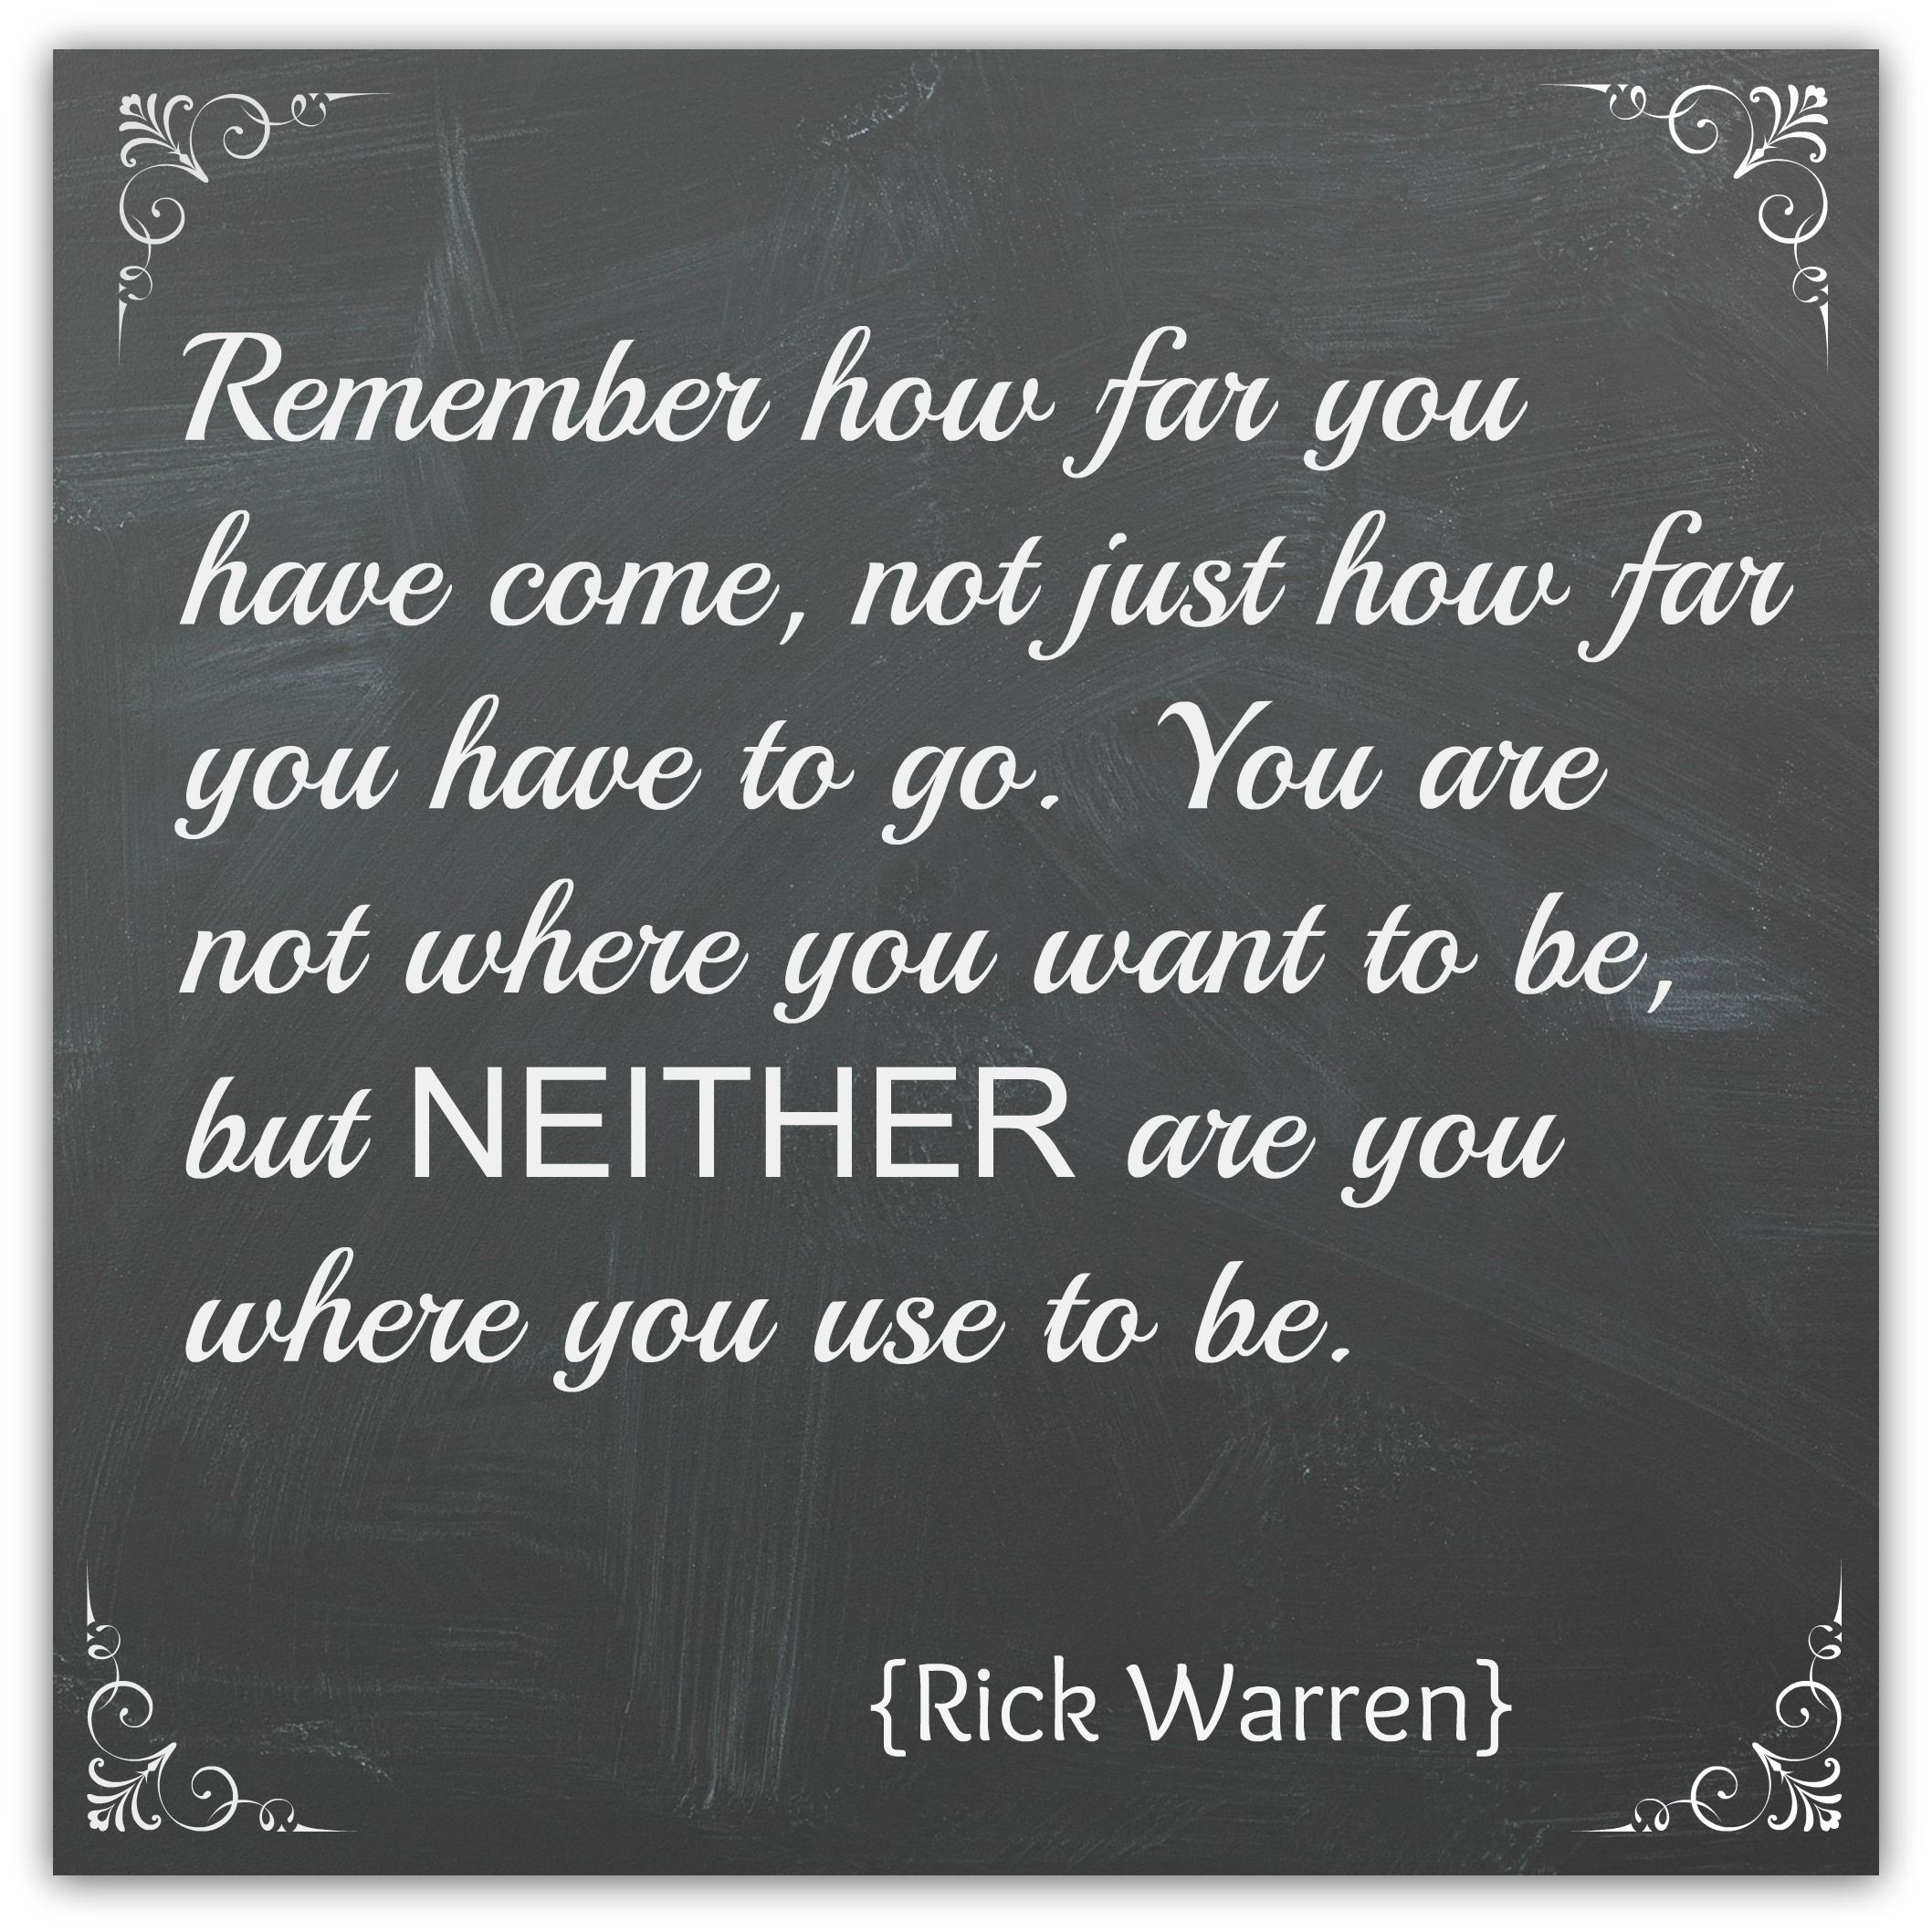 Salvage Sister and Mister - Rick Warren Quote..remember how far you have come not just how far you have to go....